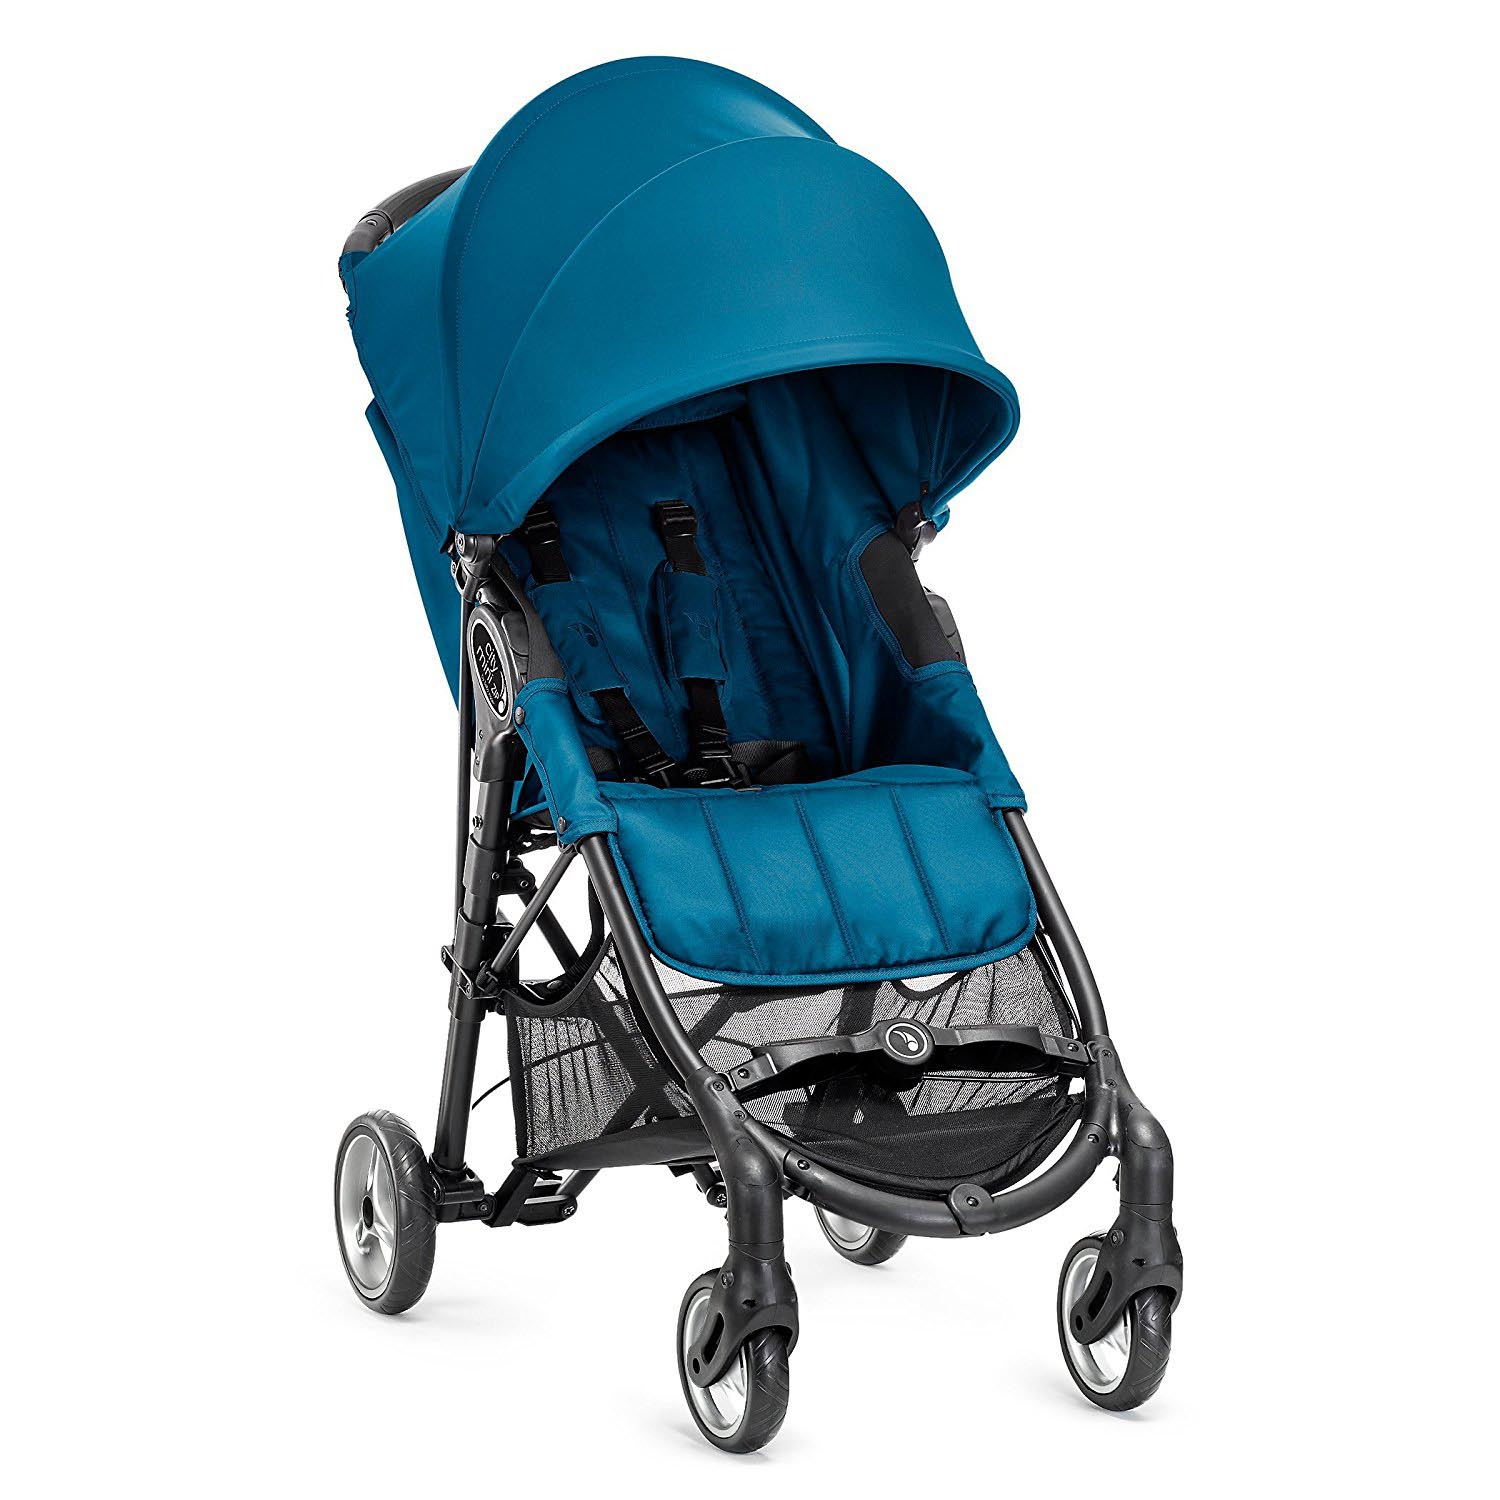 Baby Jogger City Mini Zip Compact 4 Wheel Foldable Lightweight Stroller, Teal by Baby Jogger